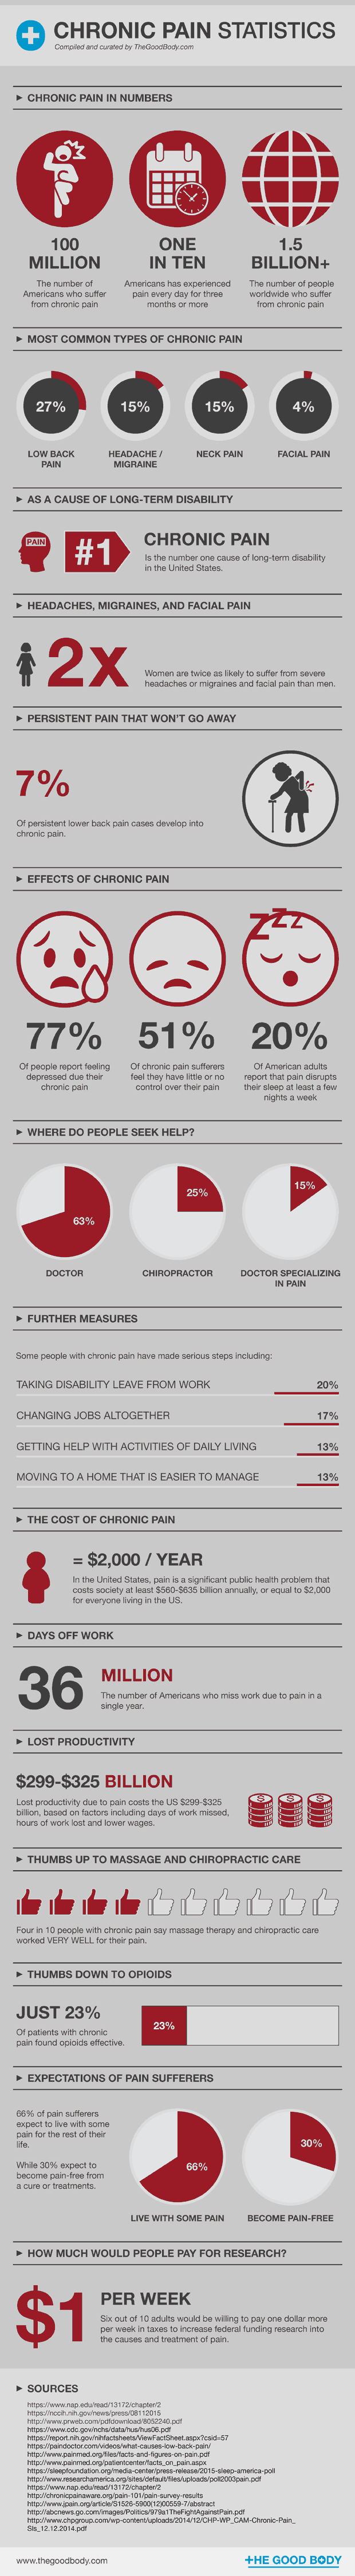 Chronic Pain Statistics: Facts, Figures And Research